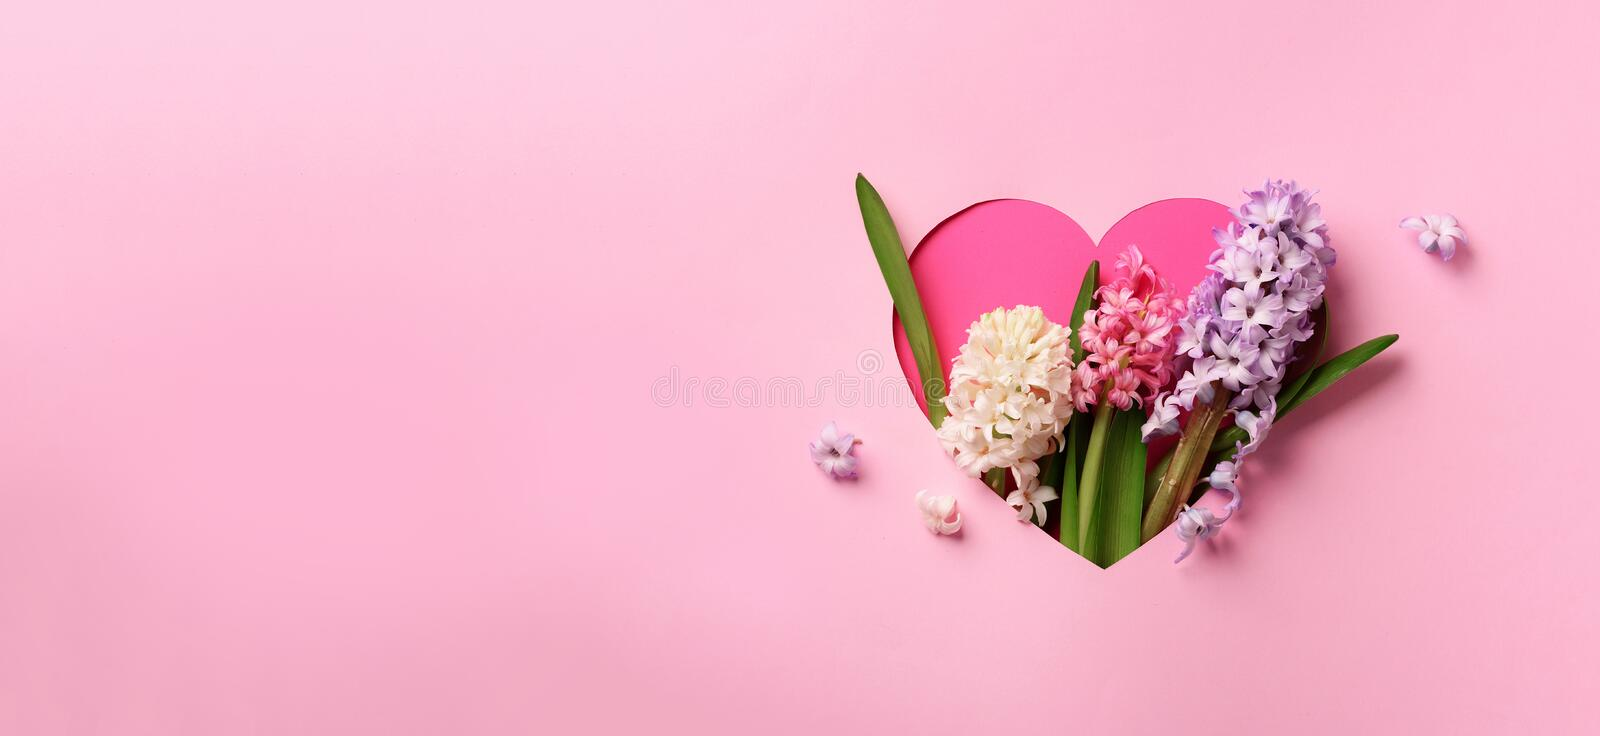 Hyacinth flowers in hole in heart shaped form over pink punchy pastel background. Top view, flat lay. Banner. Spring, summer or stock image